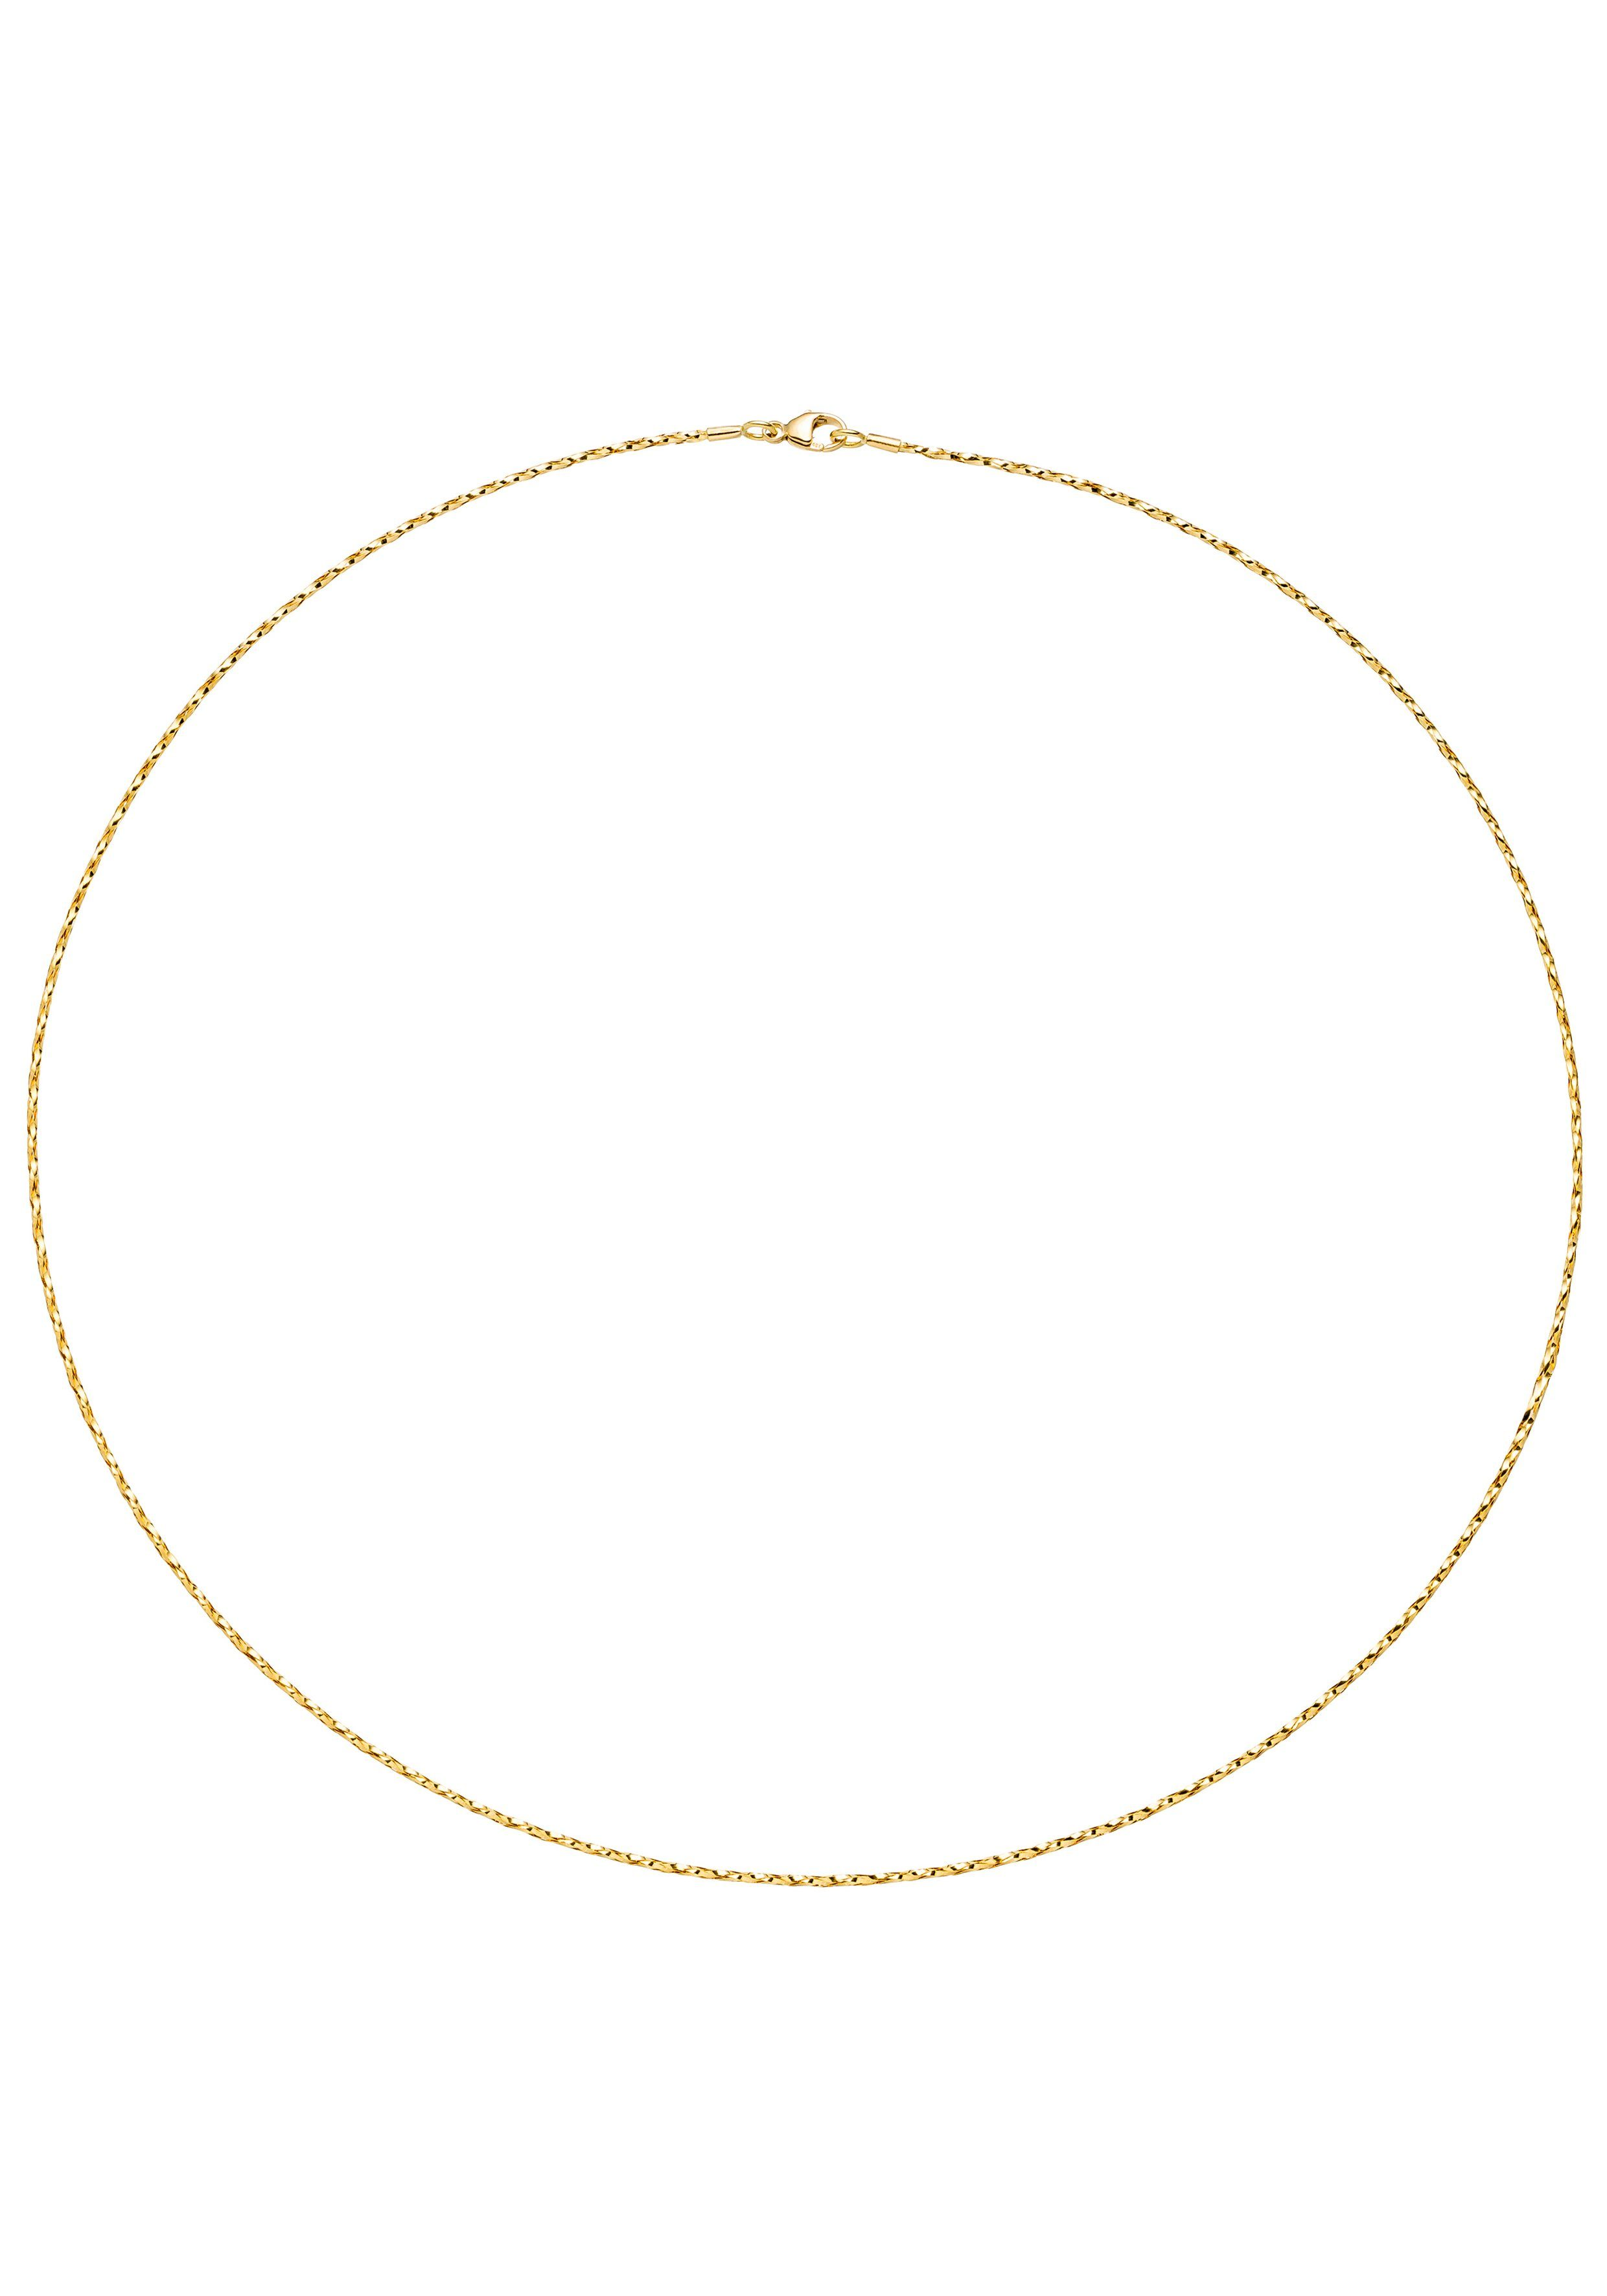 JOBO Collier 750 Gold diamantiert 42 cm 1,0 mm